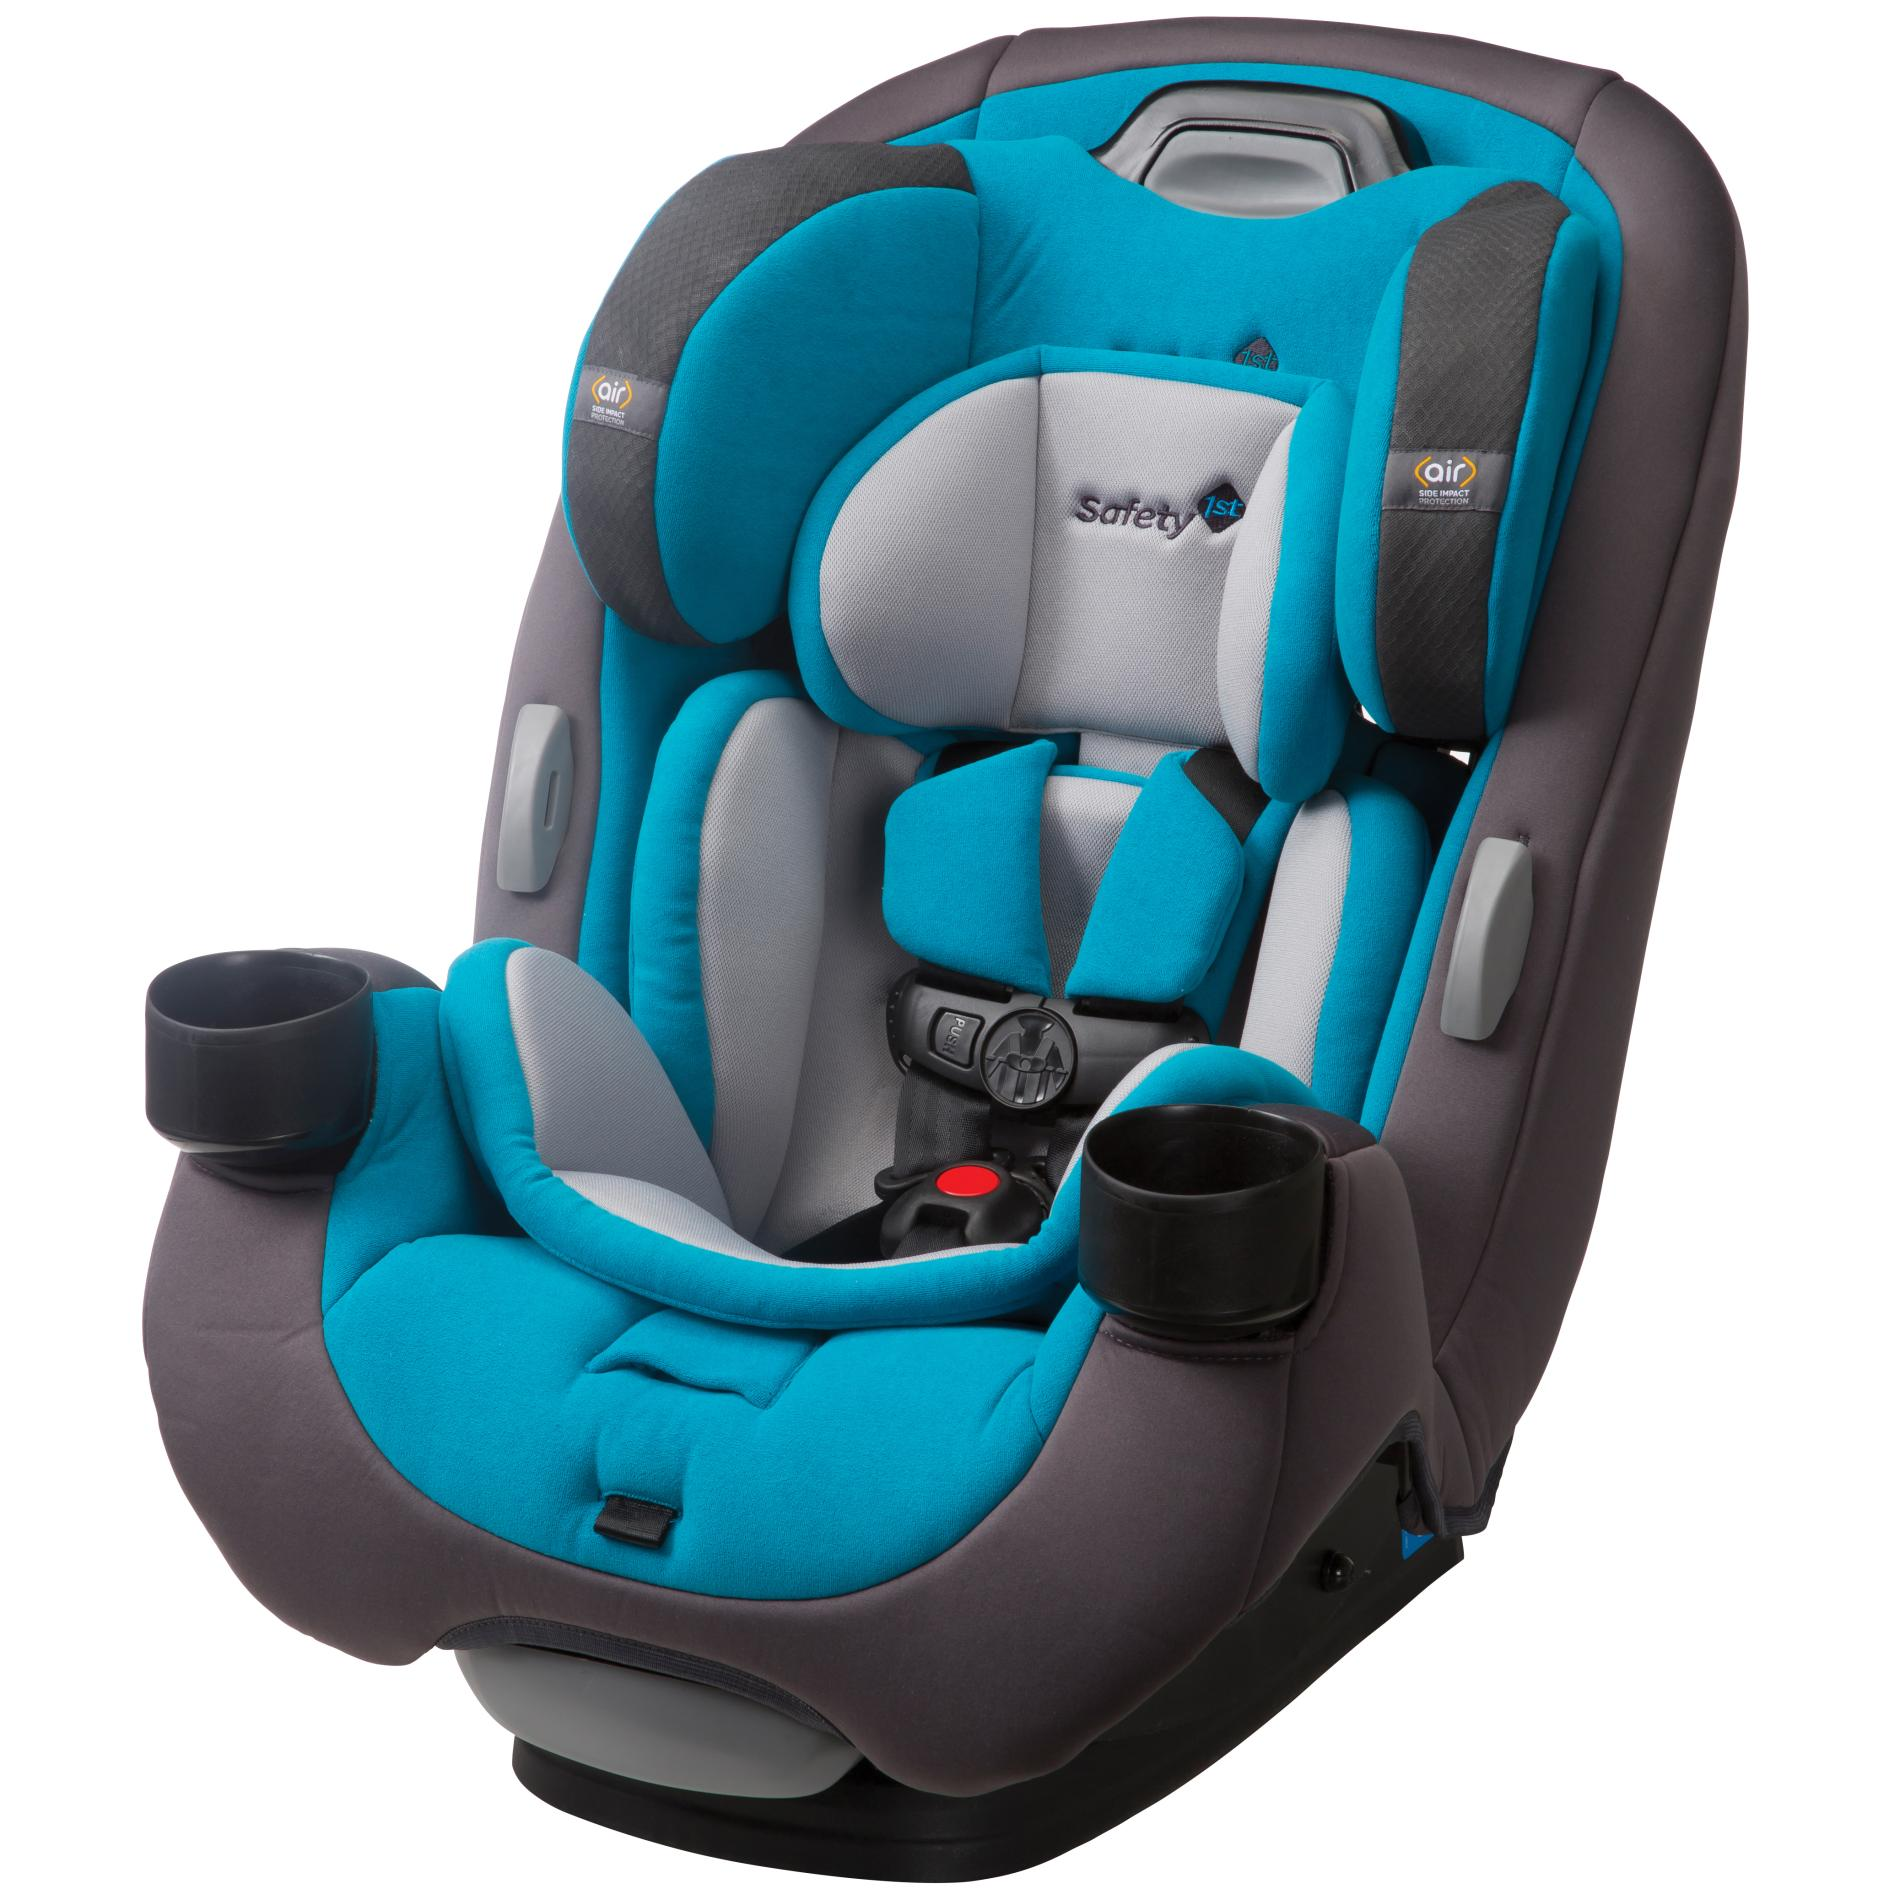 Safety 1st Grow and Go Air Car Seat Evening Drive, Blue